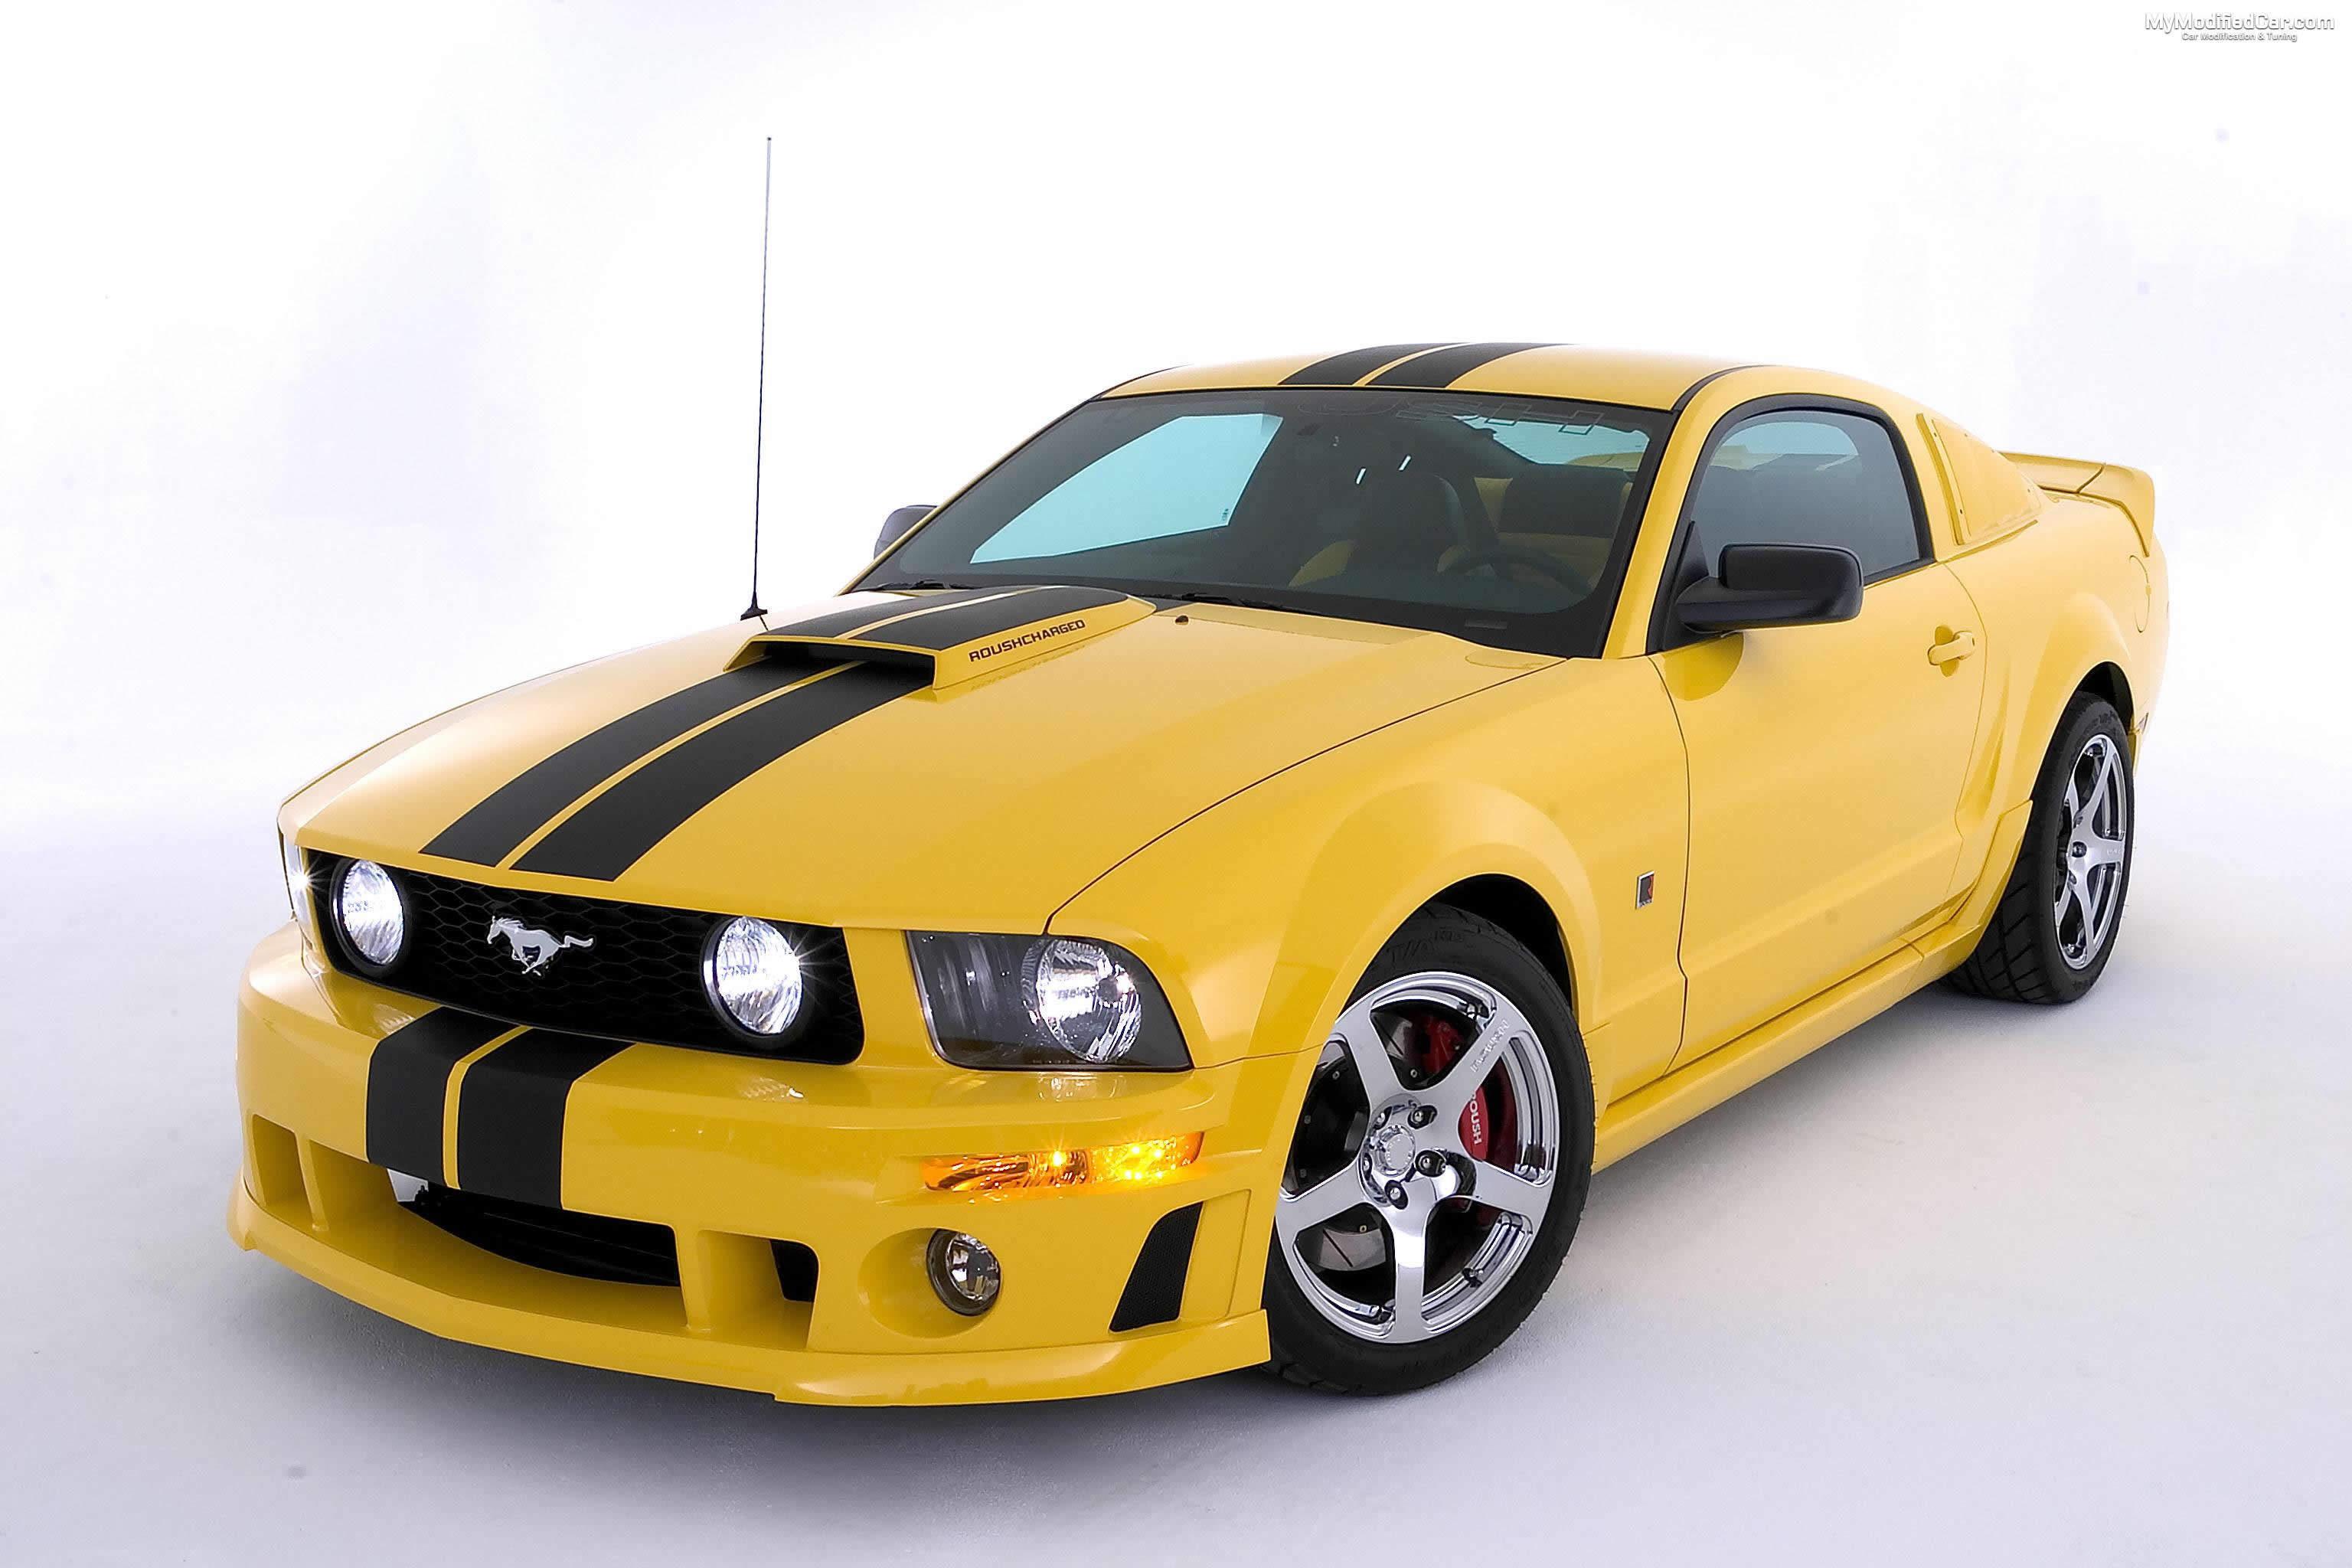 Cool Modified Cars Wallpapers Ford Mustang Modified Wallpaper Photos 1631 Wallpaper